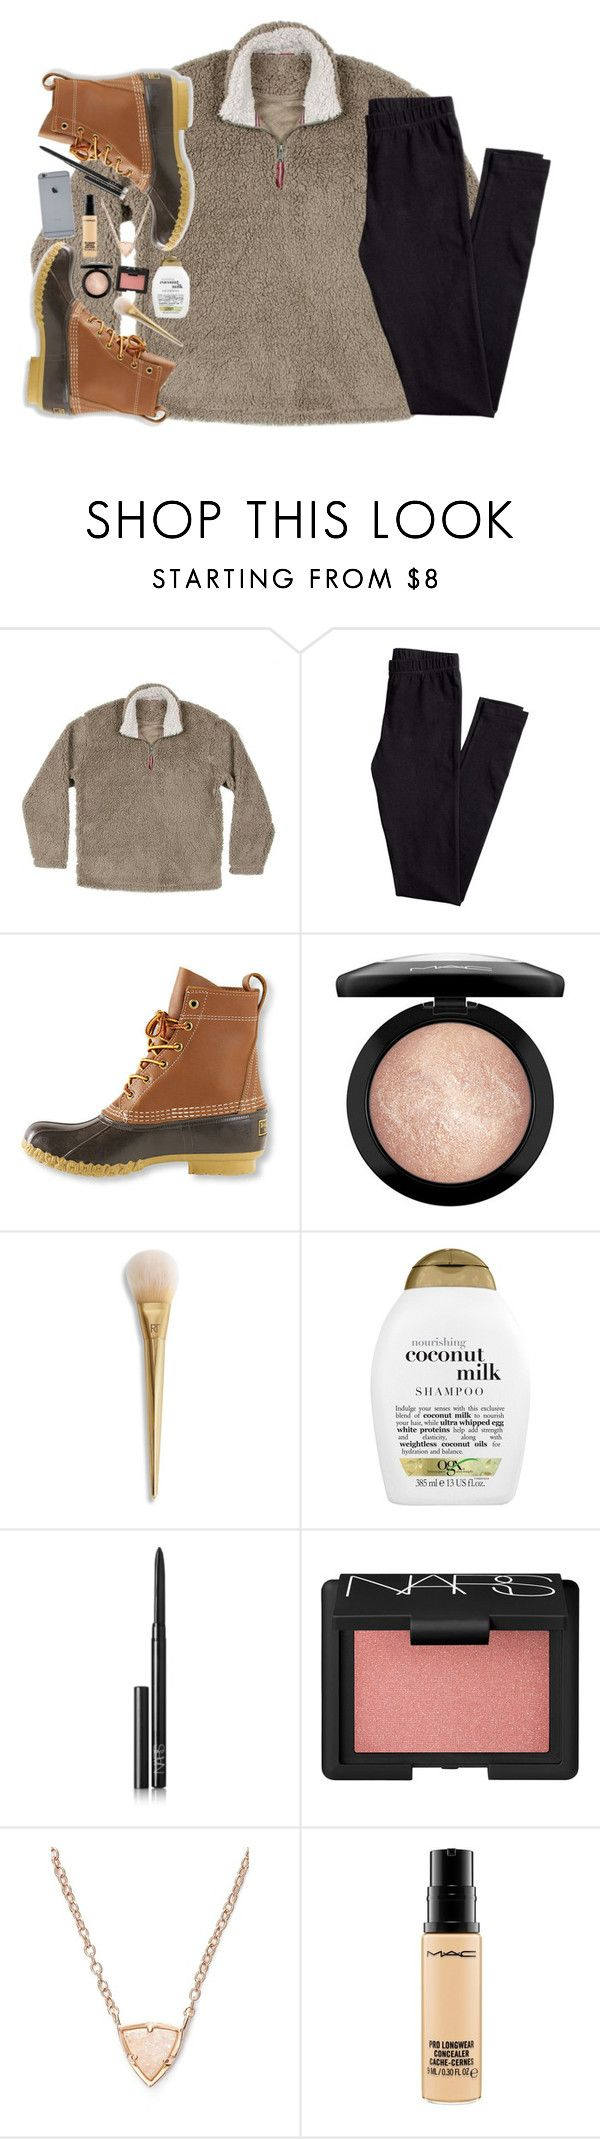 weekly update in the d! by lydia-hh ❤ liked on Polyvore featuring HM, L.L.Bean, MAC Cosmetics, Organix, NARS Cosmetics and Kendra Scott